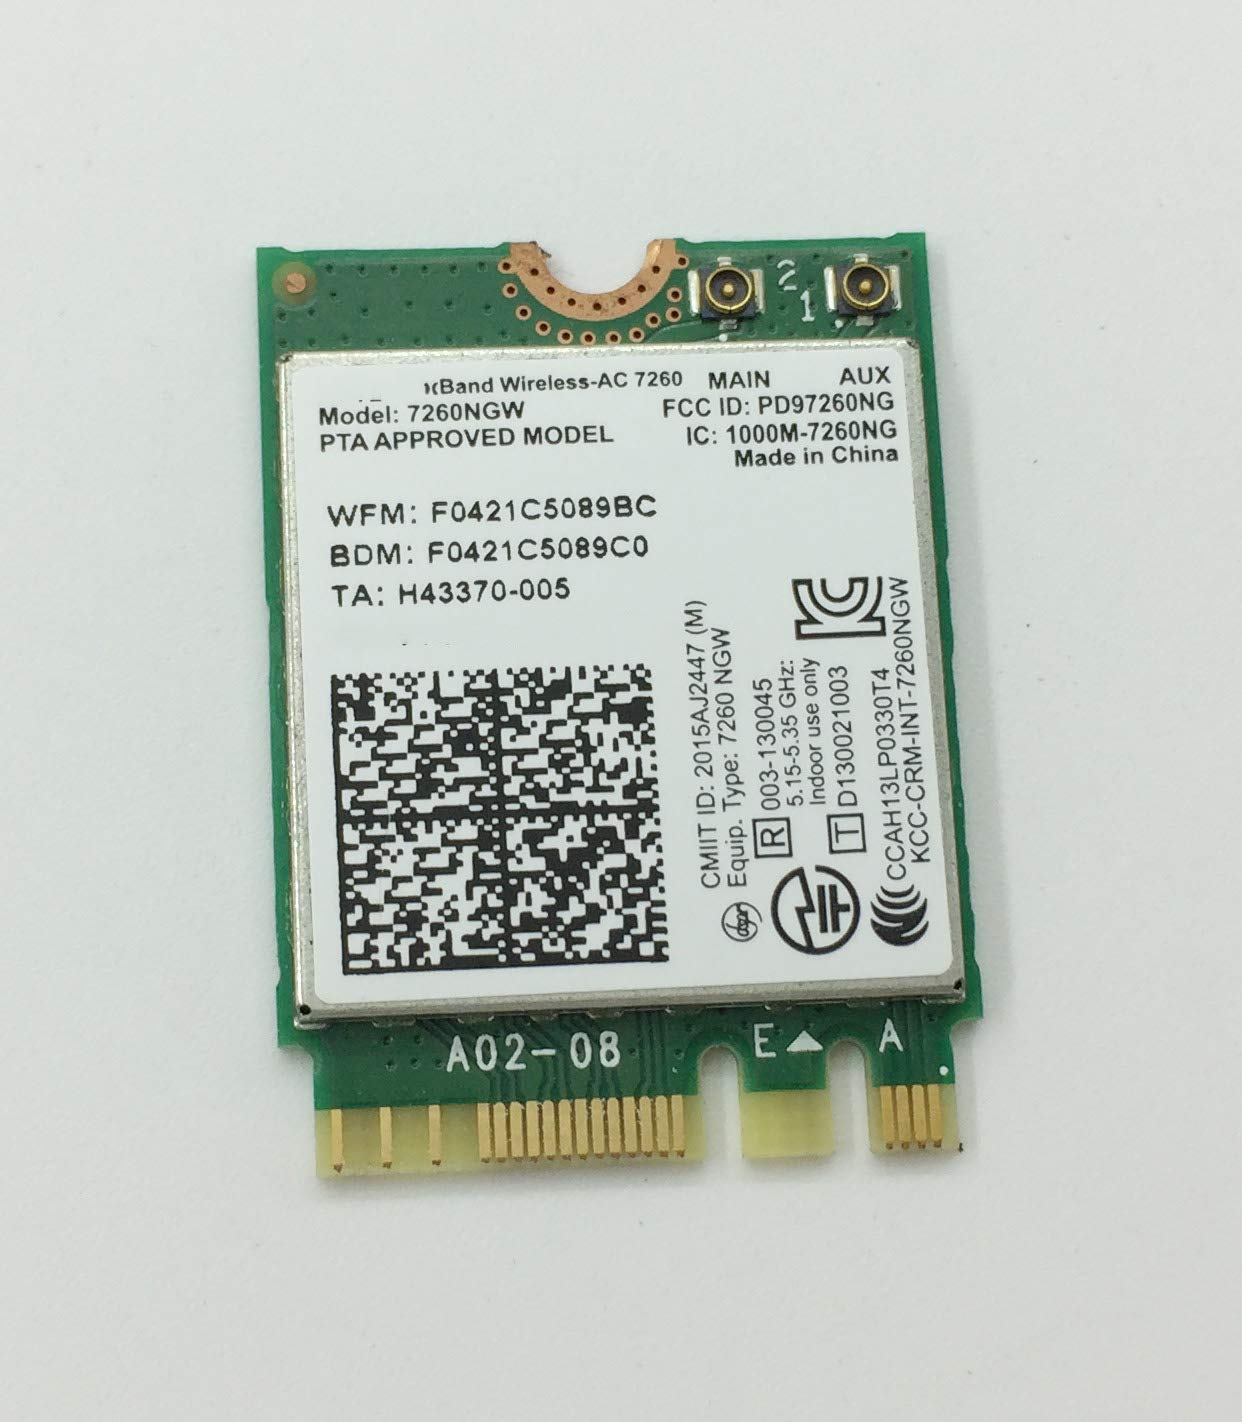 867Mbps Dual Band Wireless-AC 7260NGW WiFi Card for DELL E6520 Inspiron 15 M3800 XPS 12 9Q33 XPS 13-9333 15-9530 0GPFNK GPFNK M7X42